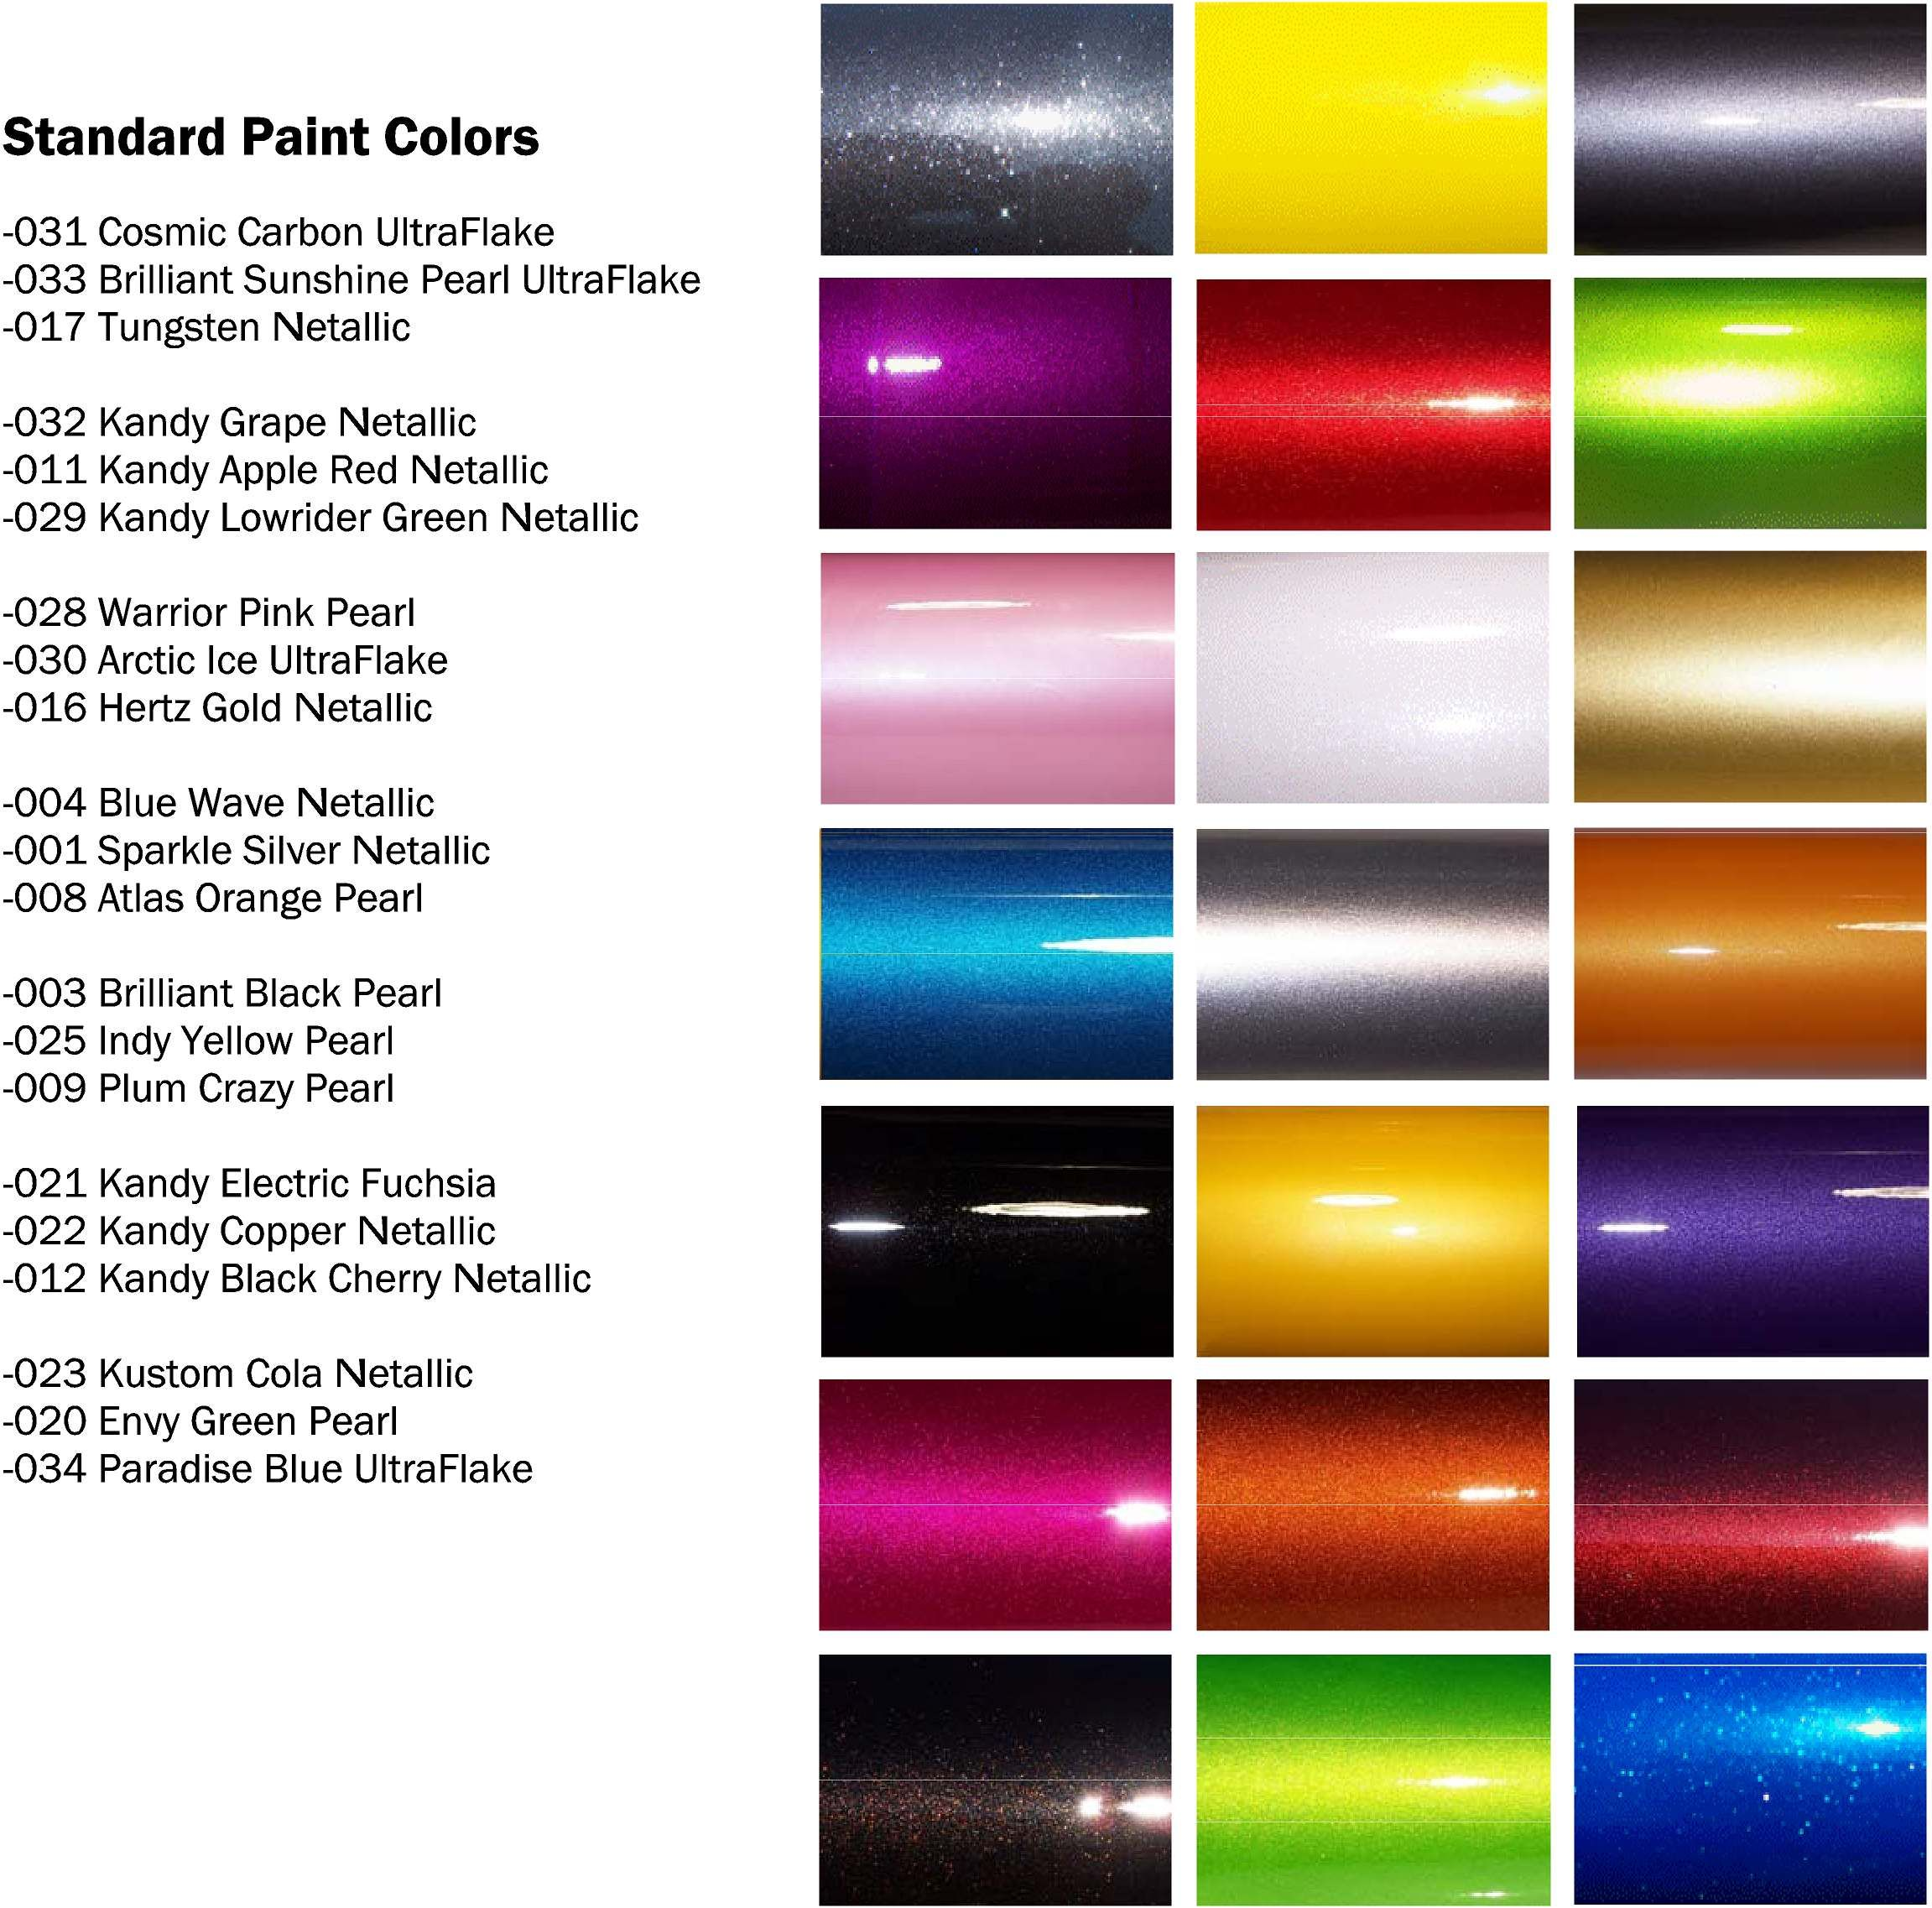 Automotive paint colors pinteres for Different yellow paint colors